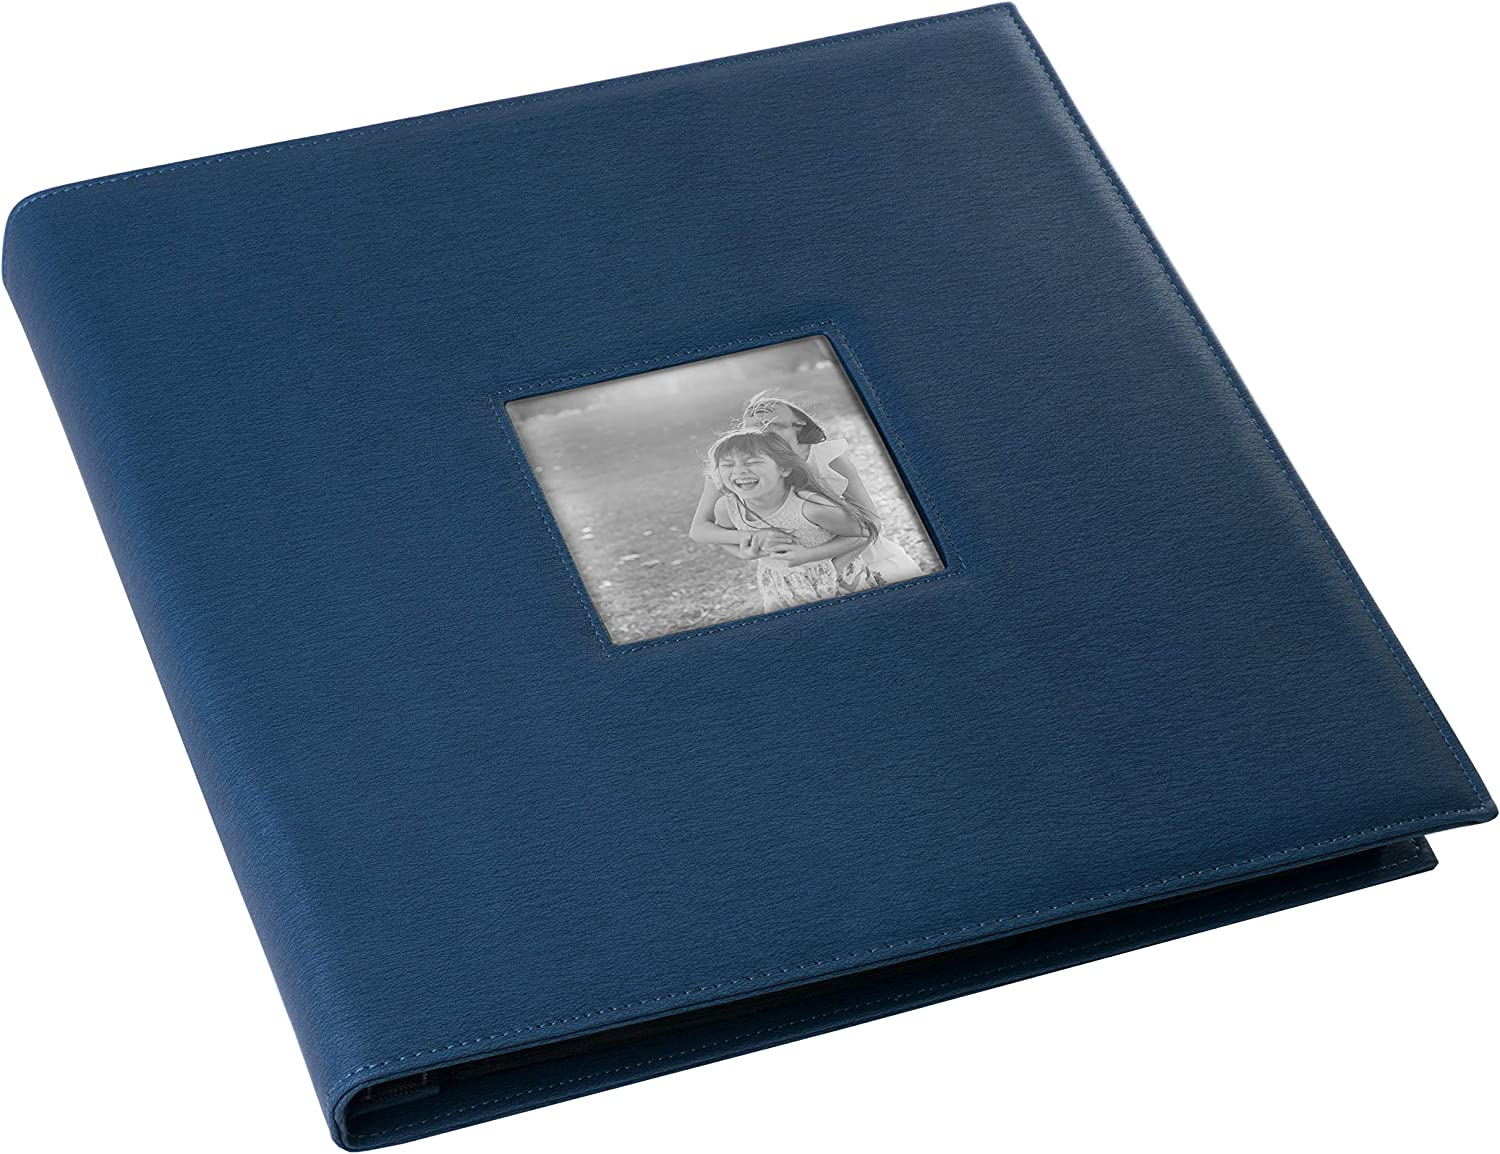 Red Co. Navy Faux Leather Family Photo Album with Front Cover Window Frame – Holds 600 4x6 Photographs